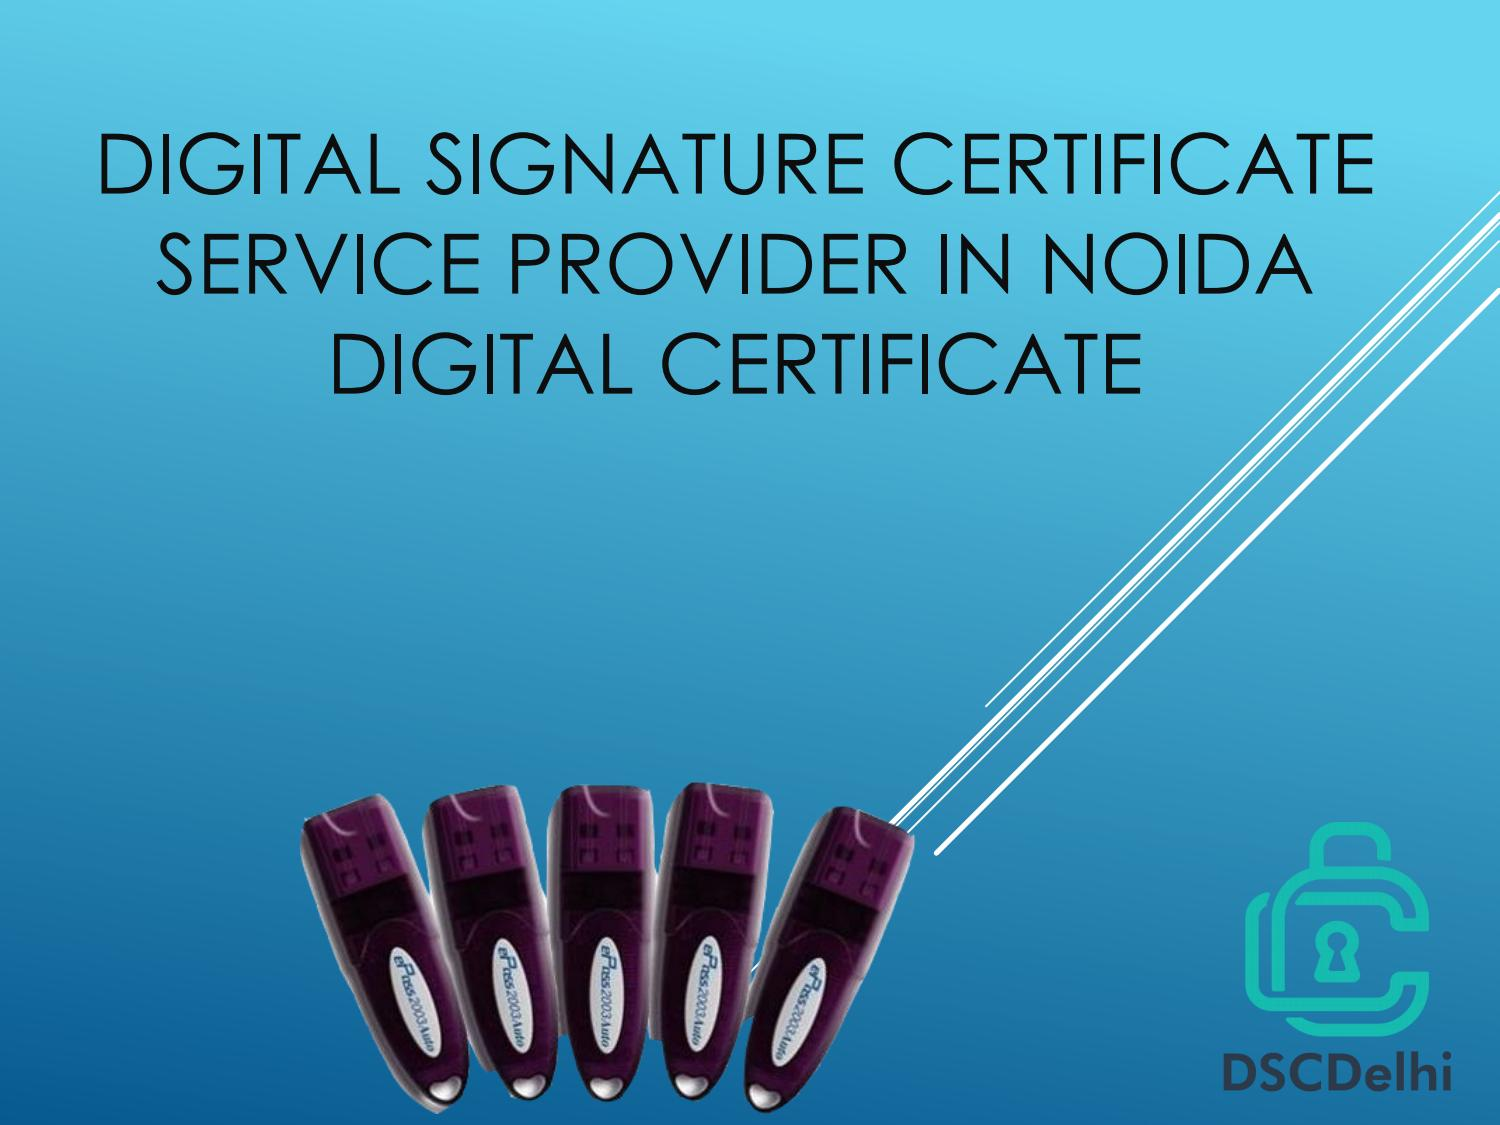 Digital Signature Certificate Services Provider In Noida India By